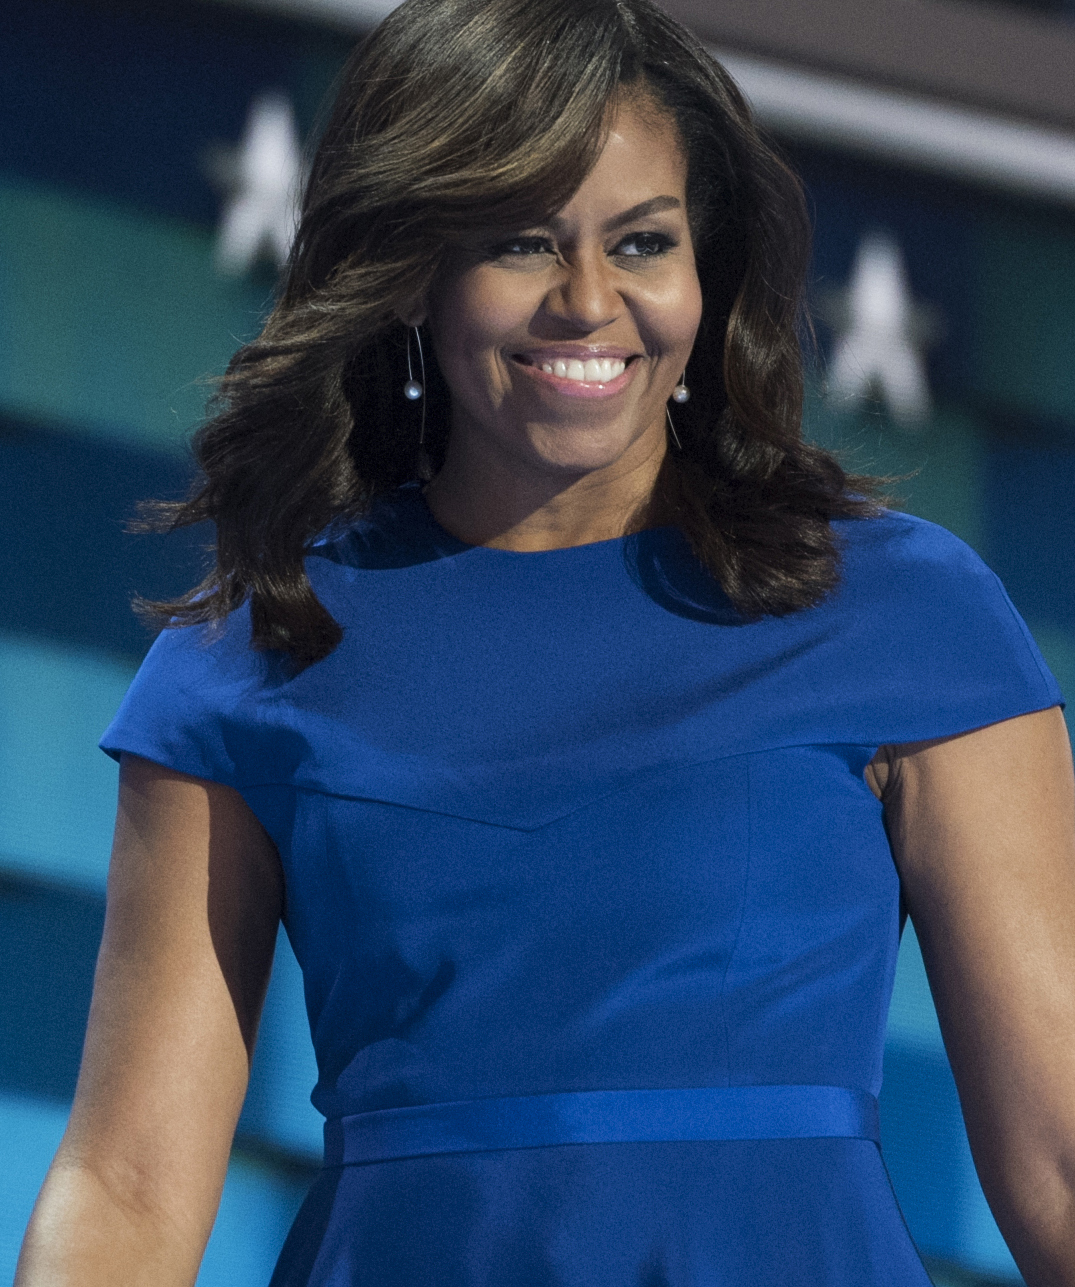 Why Michelle Obama wore this dress